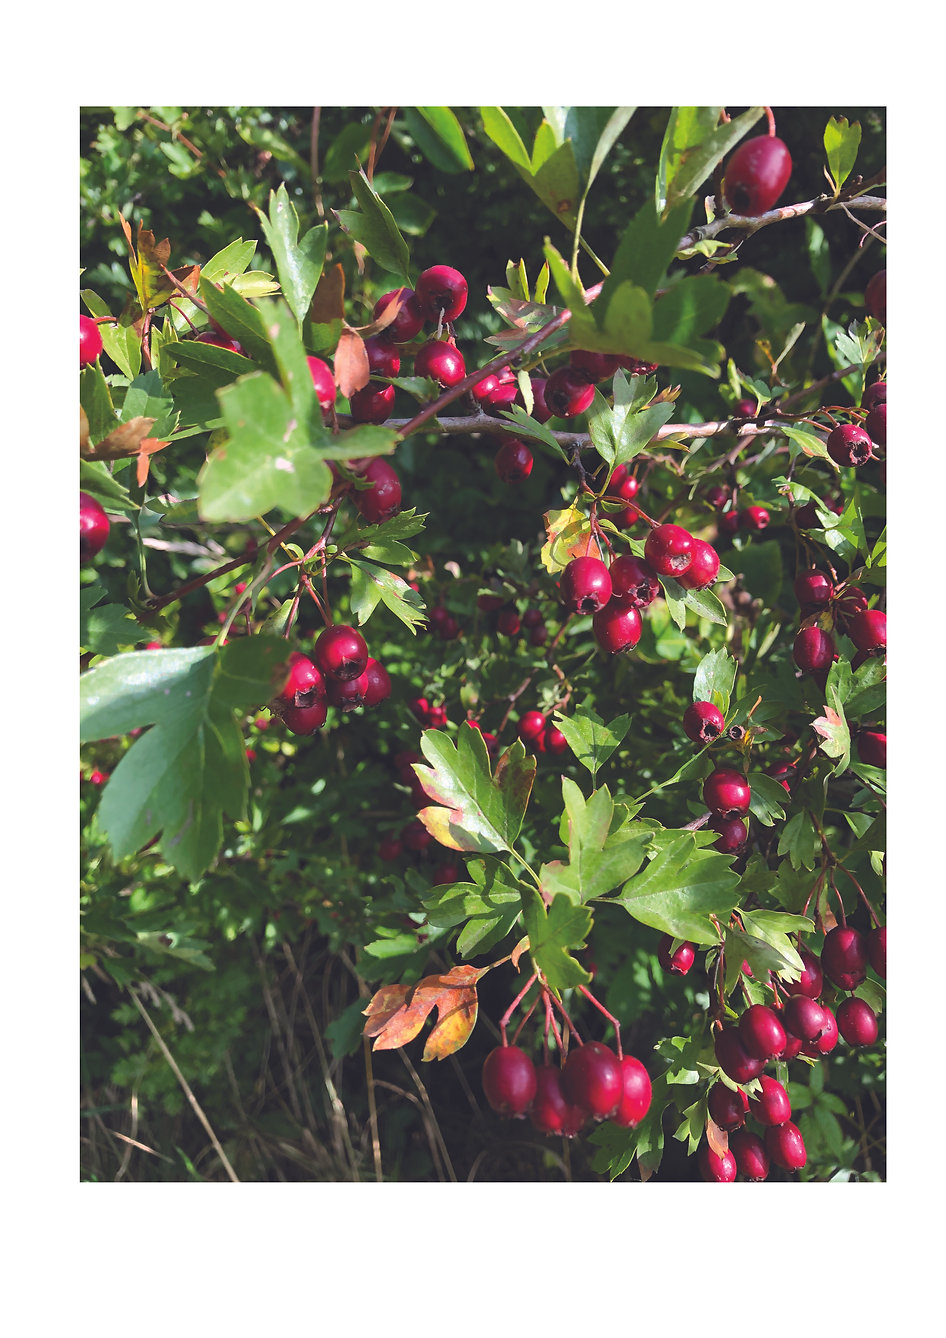 phot of berries.jpg